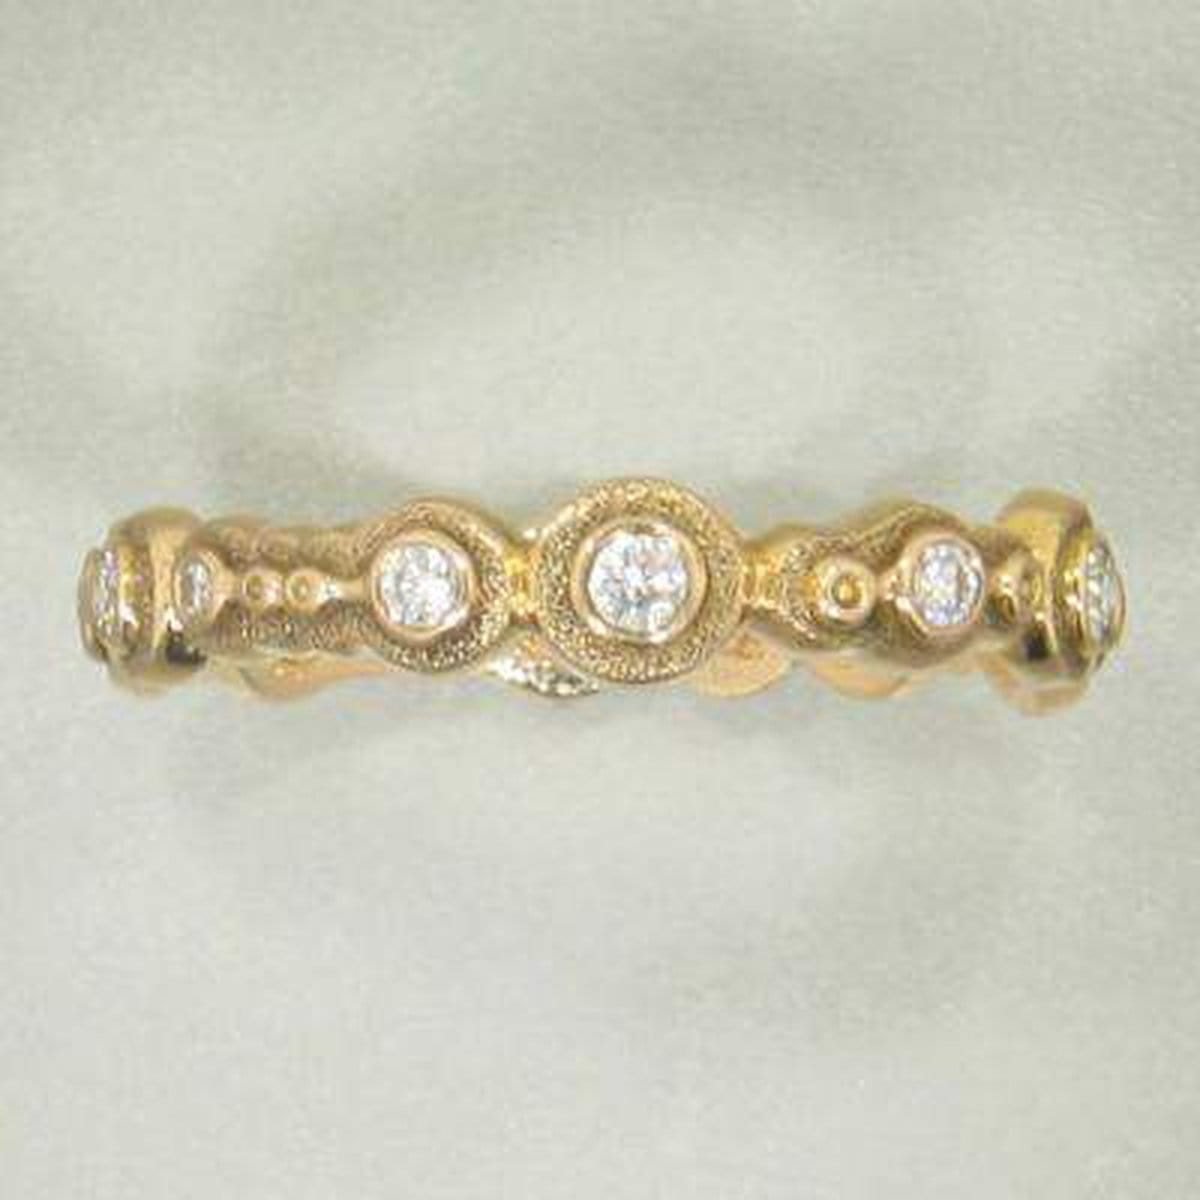 Submarine Rose Gold Band - R-170RD-Alex Sepkus-Renee Taylor Gallery